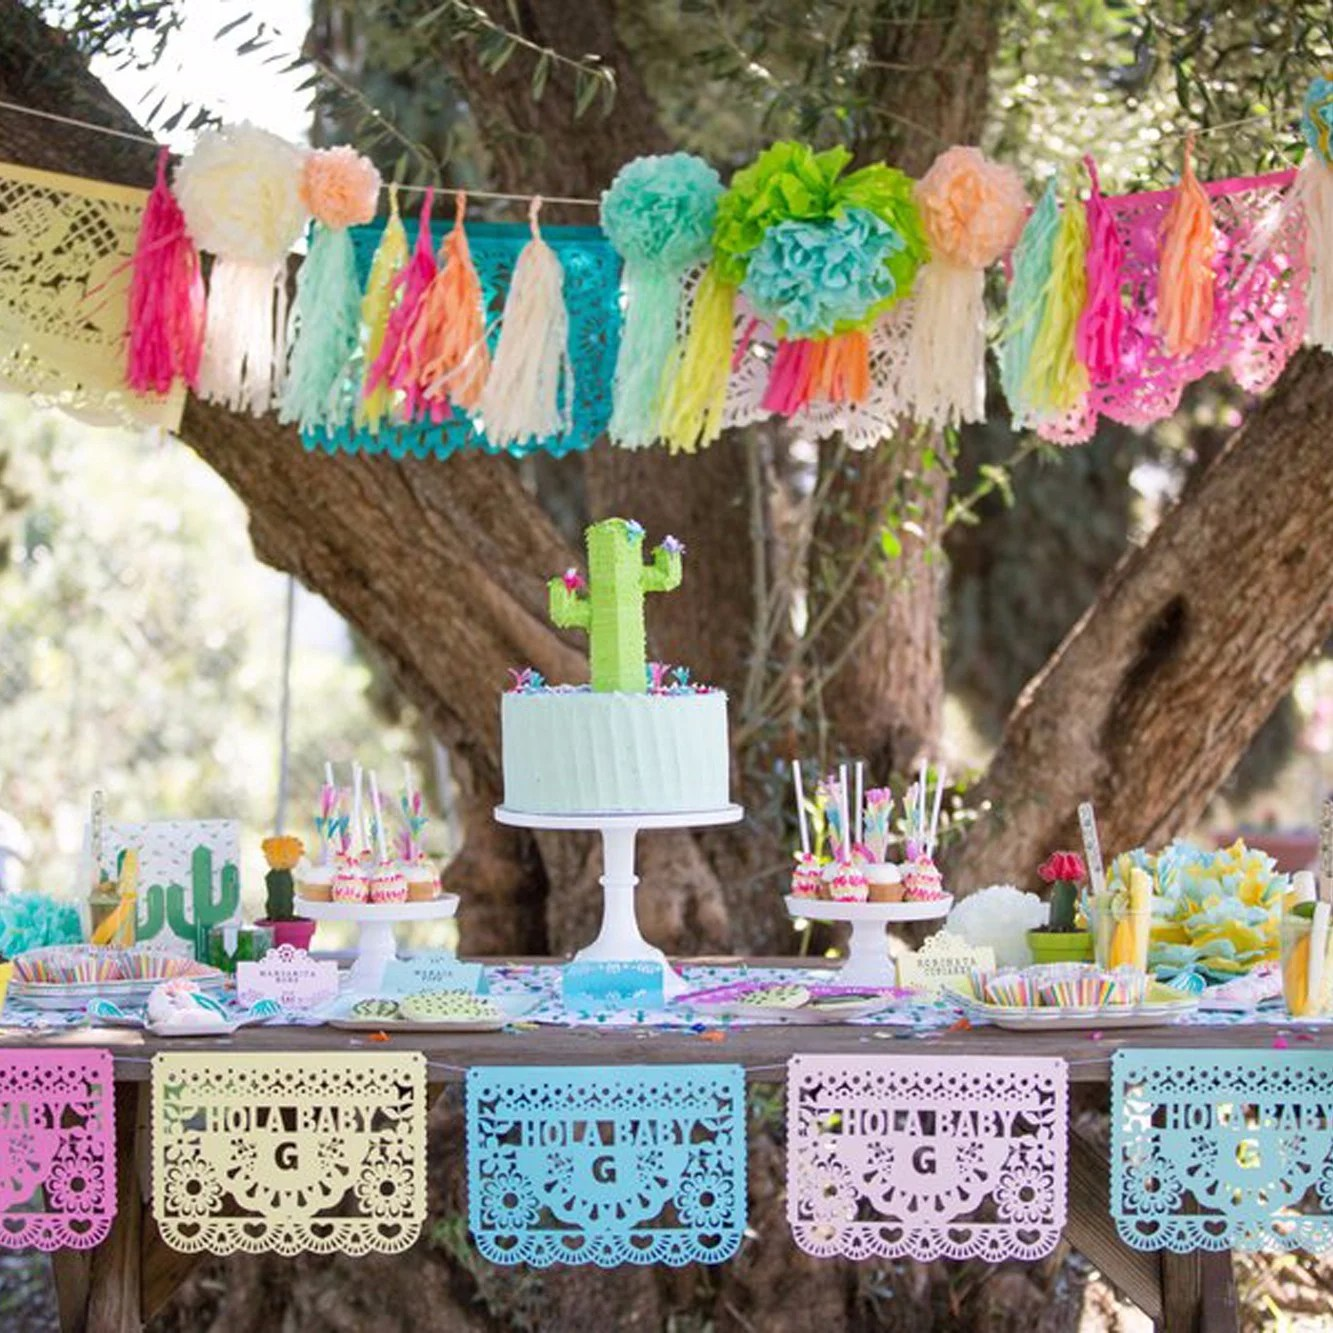 Adorable February When To Have A Baby Shower Uk Gender Neutral Baby Shower Ideas When To Have A Baby Shower If Due baby shower When To Have A Baby Shower